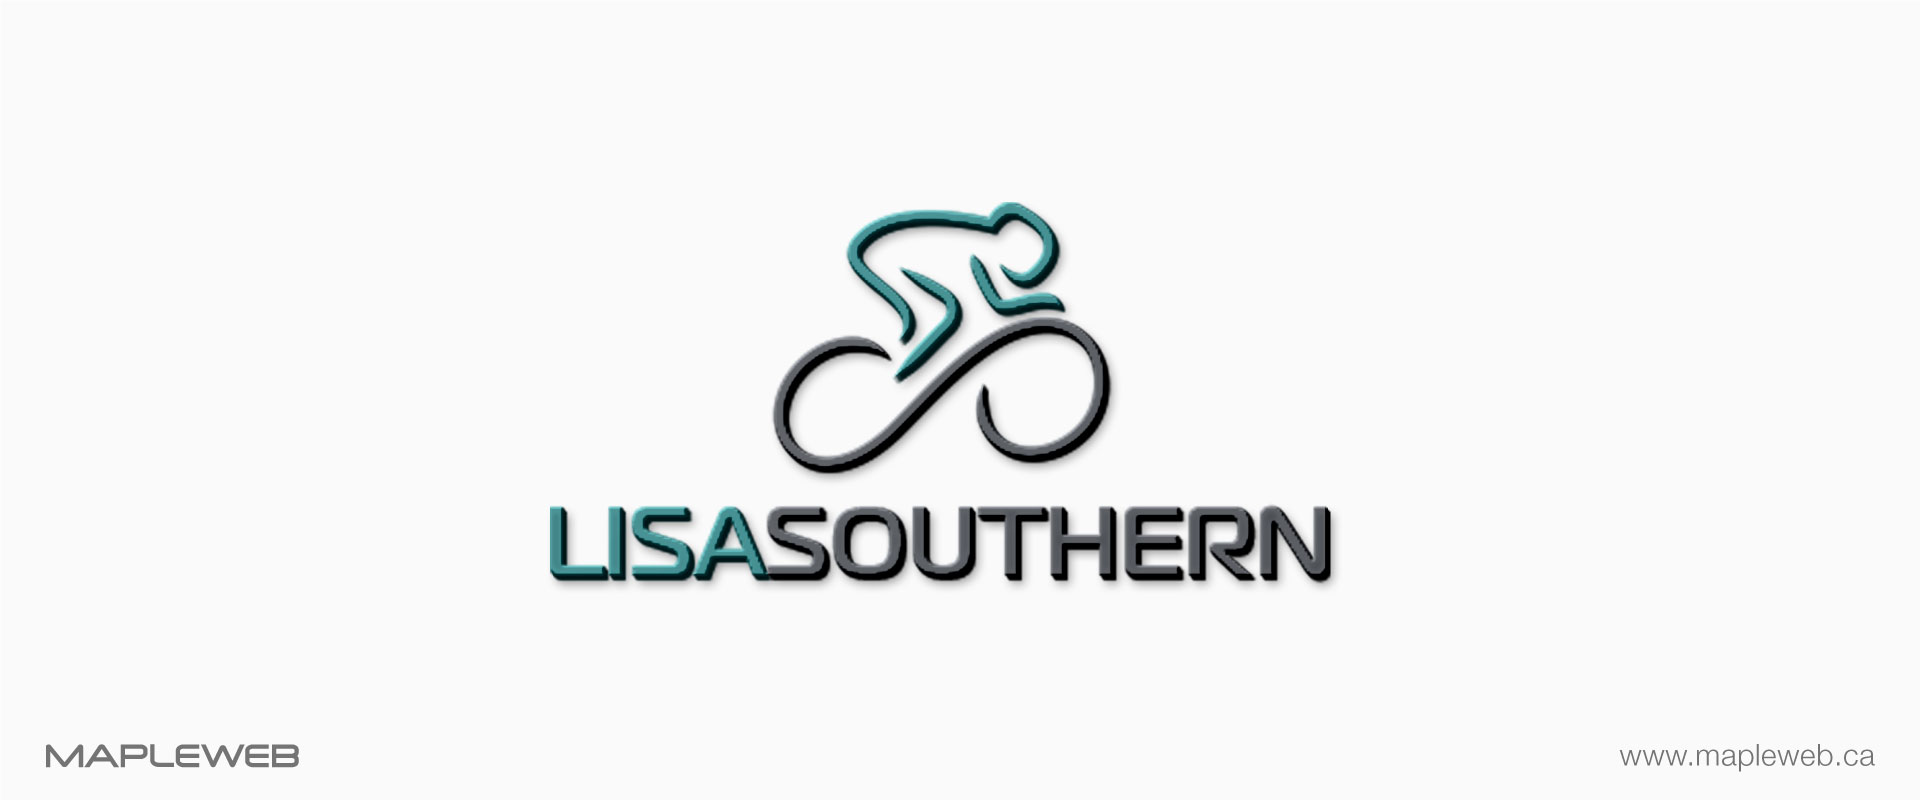 lisa-southern-brand-logo-design-by-mapleweb-vancouver-canada-3d-mock